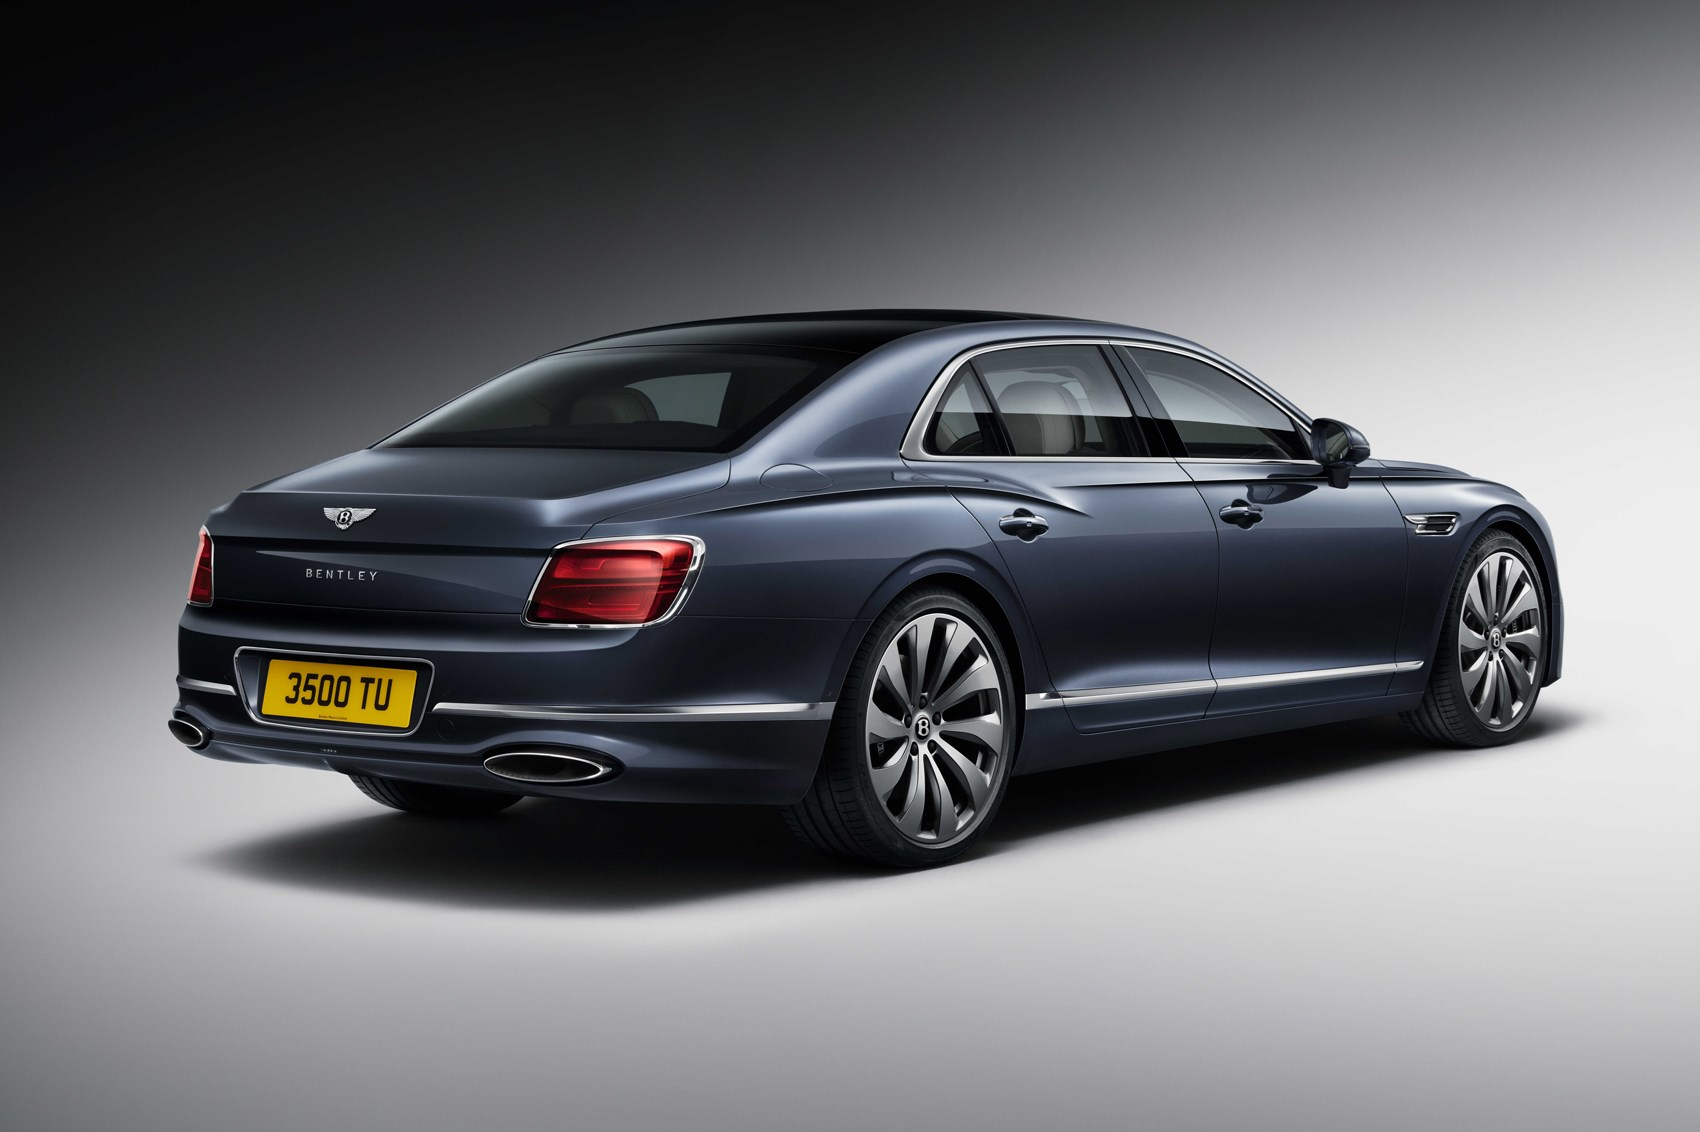 New Bentley Flying Spur: Luxury Four-door Returns